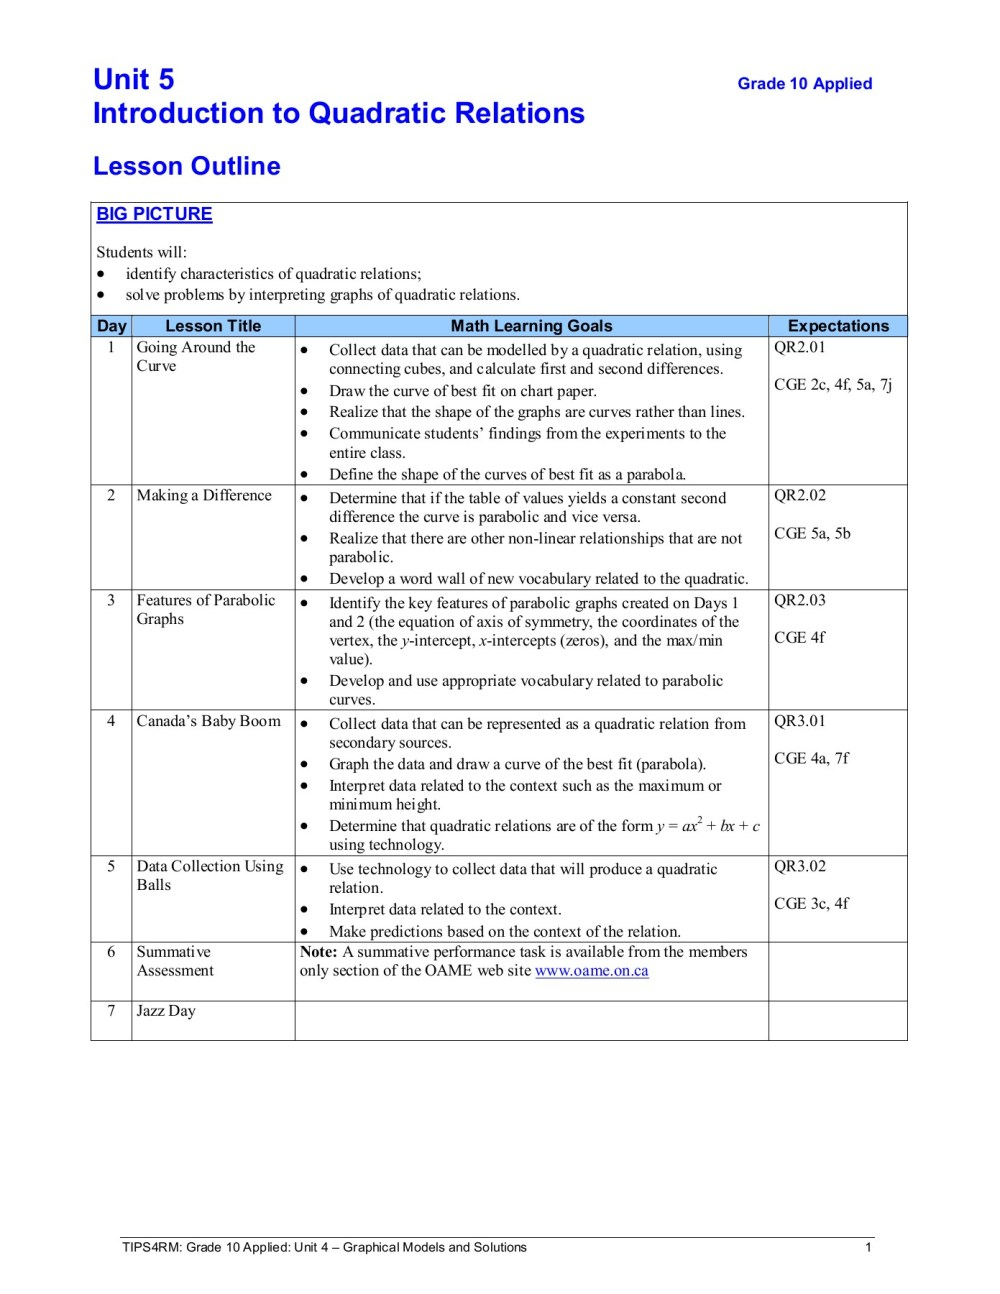 medium resolution of Unit 5 Grade 10 Applied Introduction to Quadratic Relations-Flip eBook  Pages 1 - 22  AnyFlip   AnyFlip